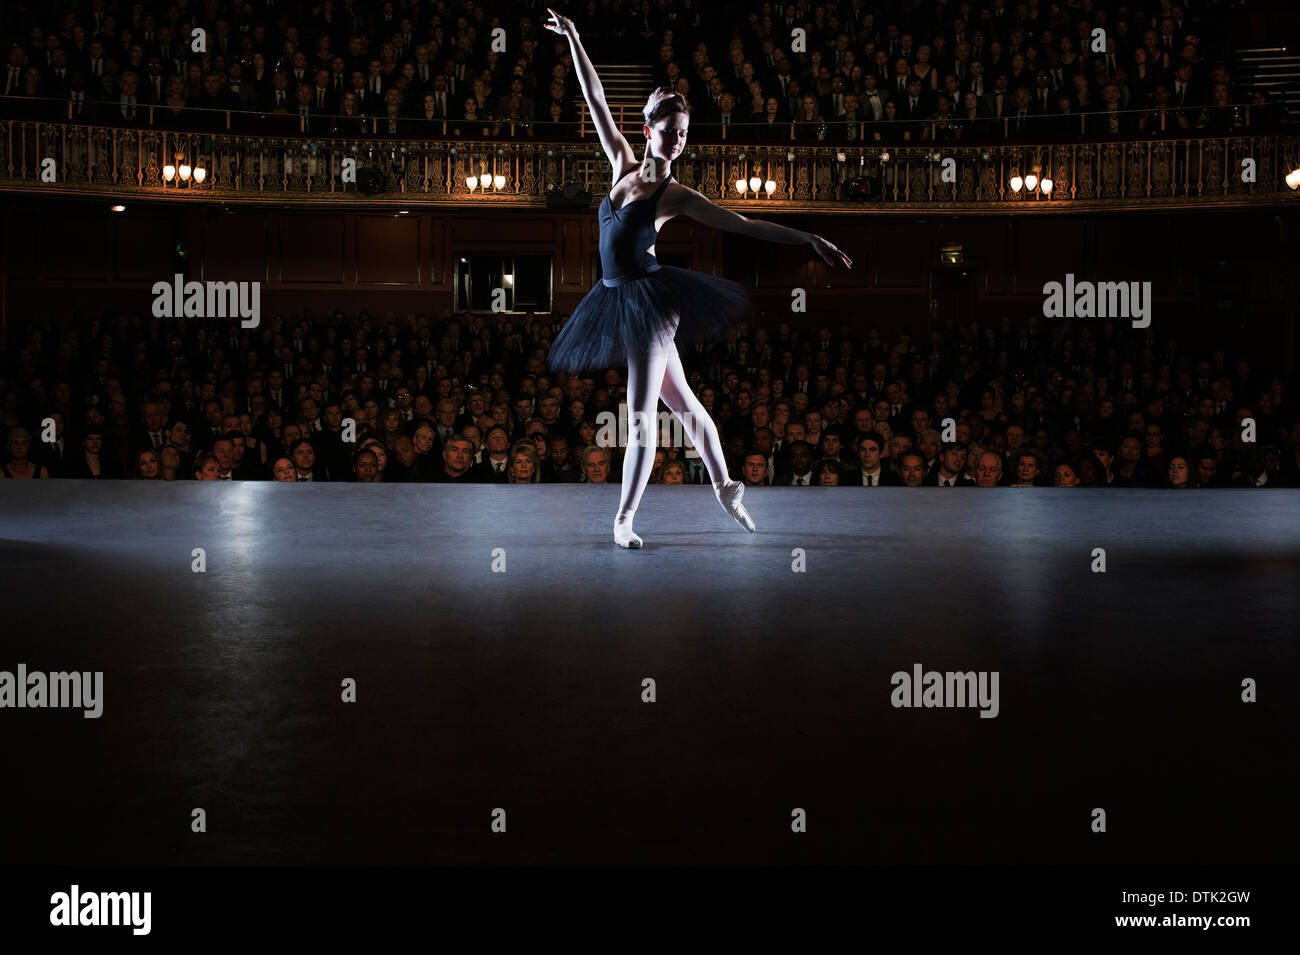 Ballet dancer performing on stage in theater Stock Photo